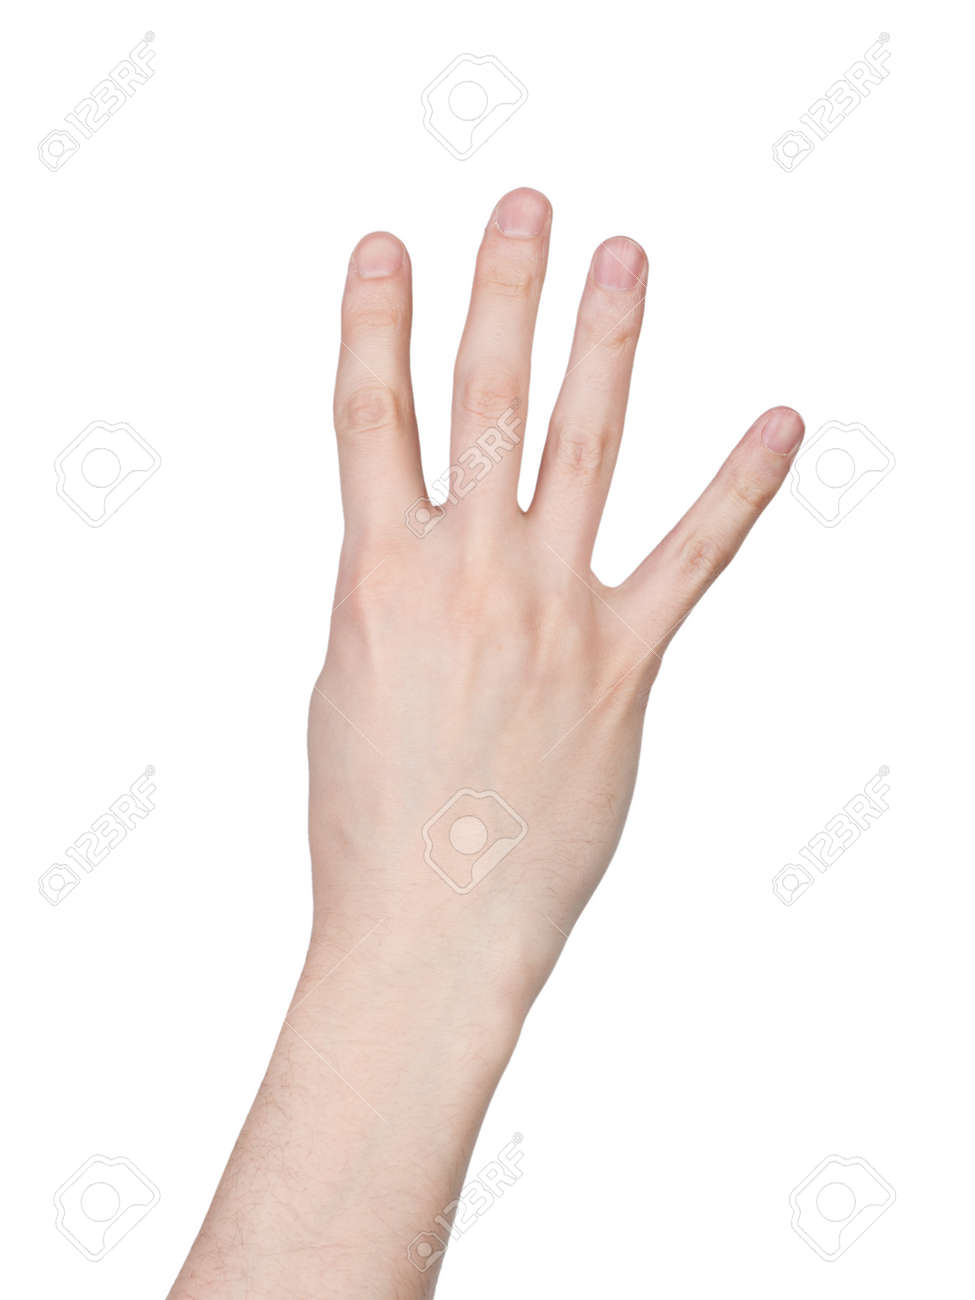 Male hand finger number isolated on white background - 122398206